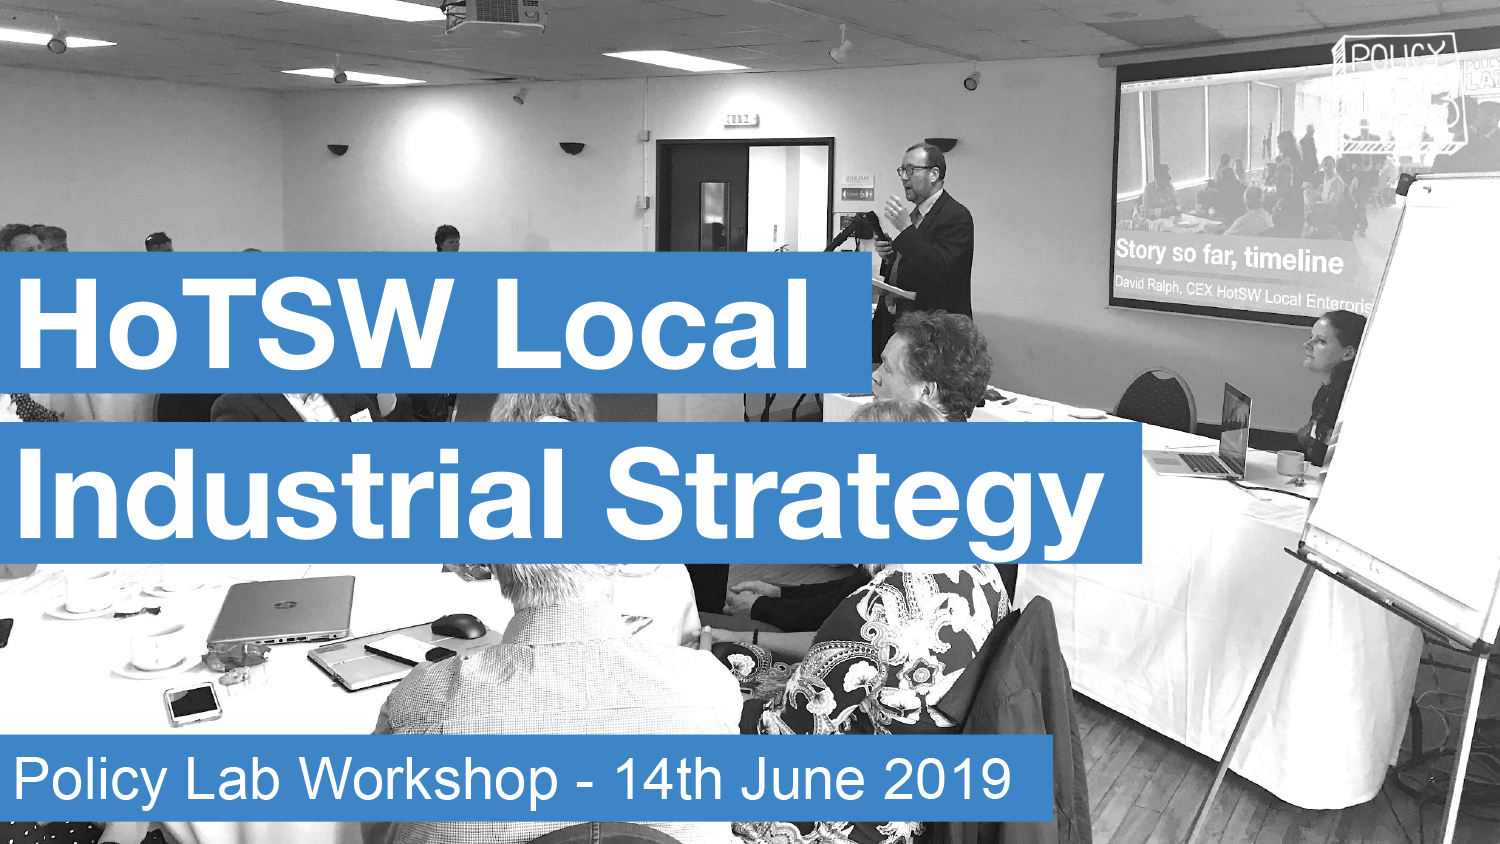 2019-06-14-HoTSW-Local-Industrial-Strategy-2